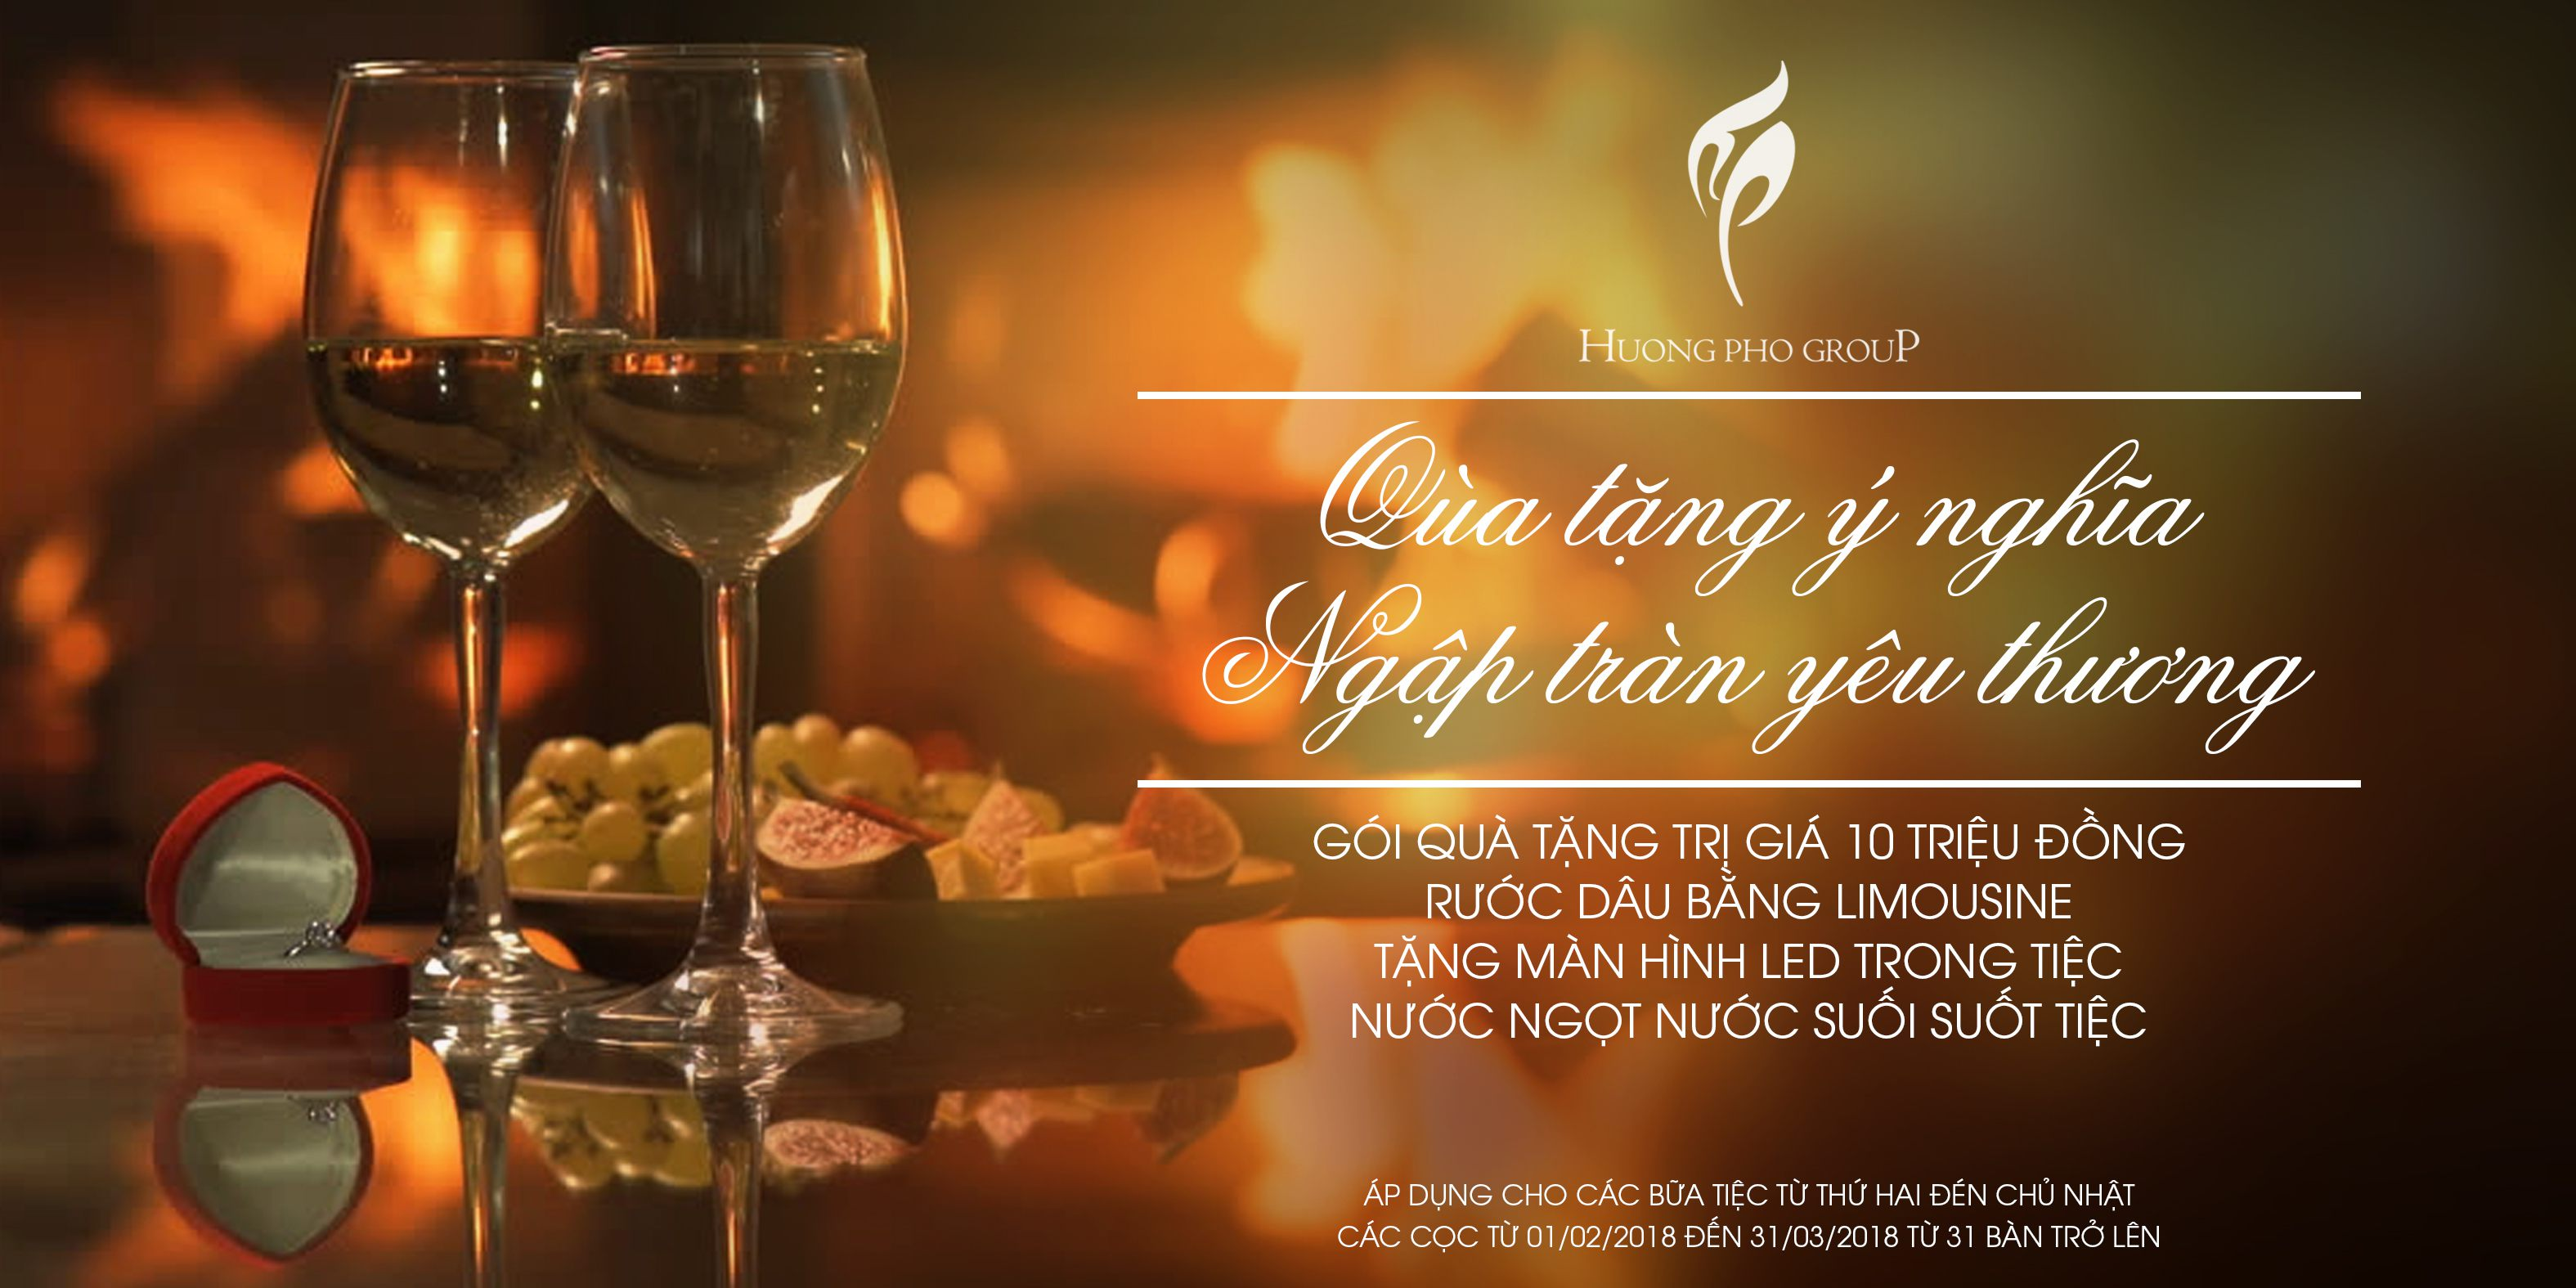 HUONG PHO GROUP BANNER